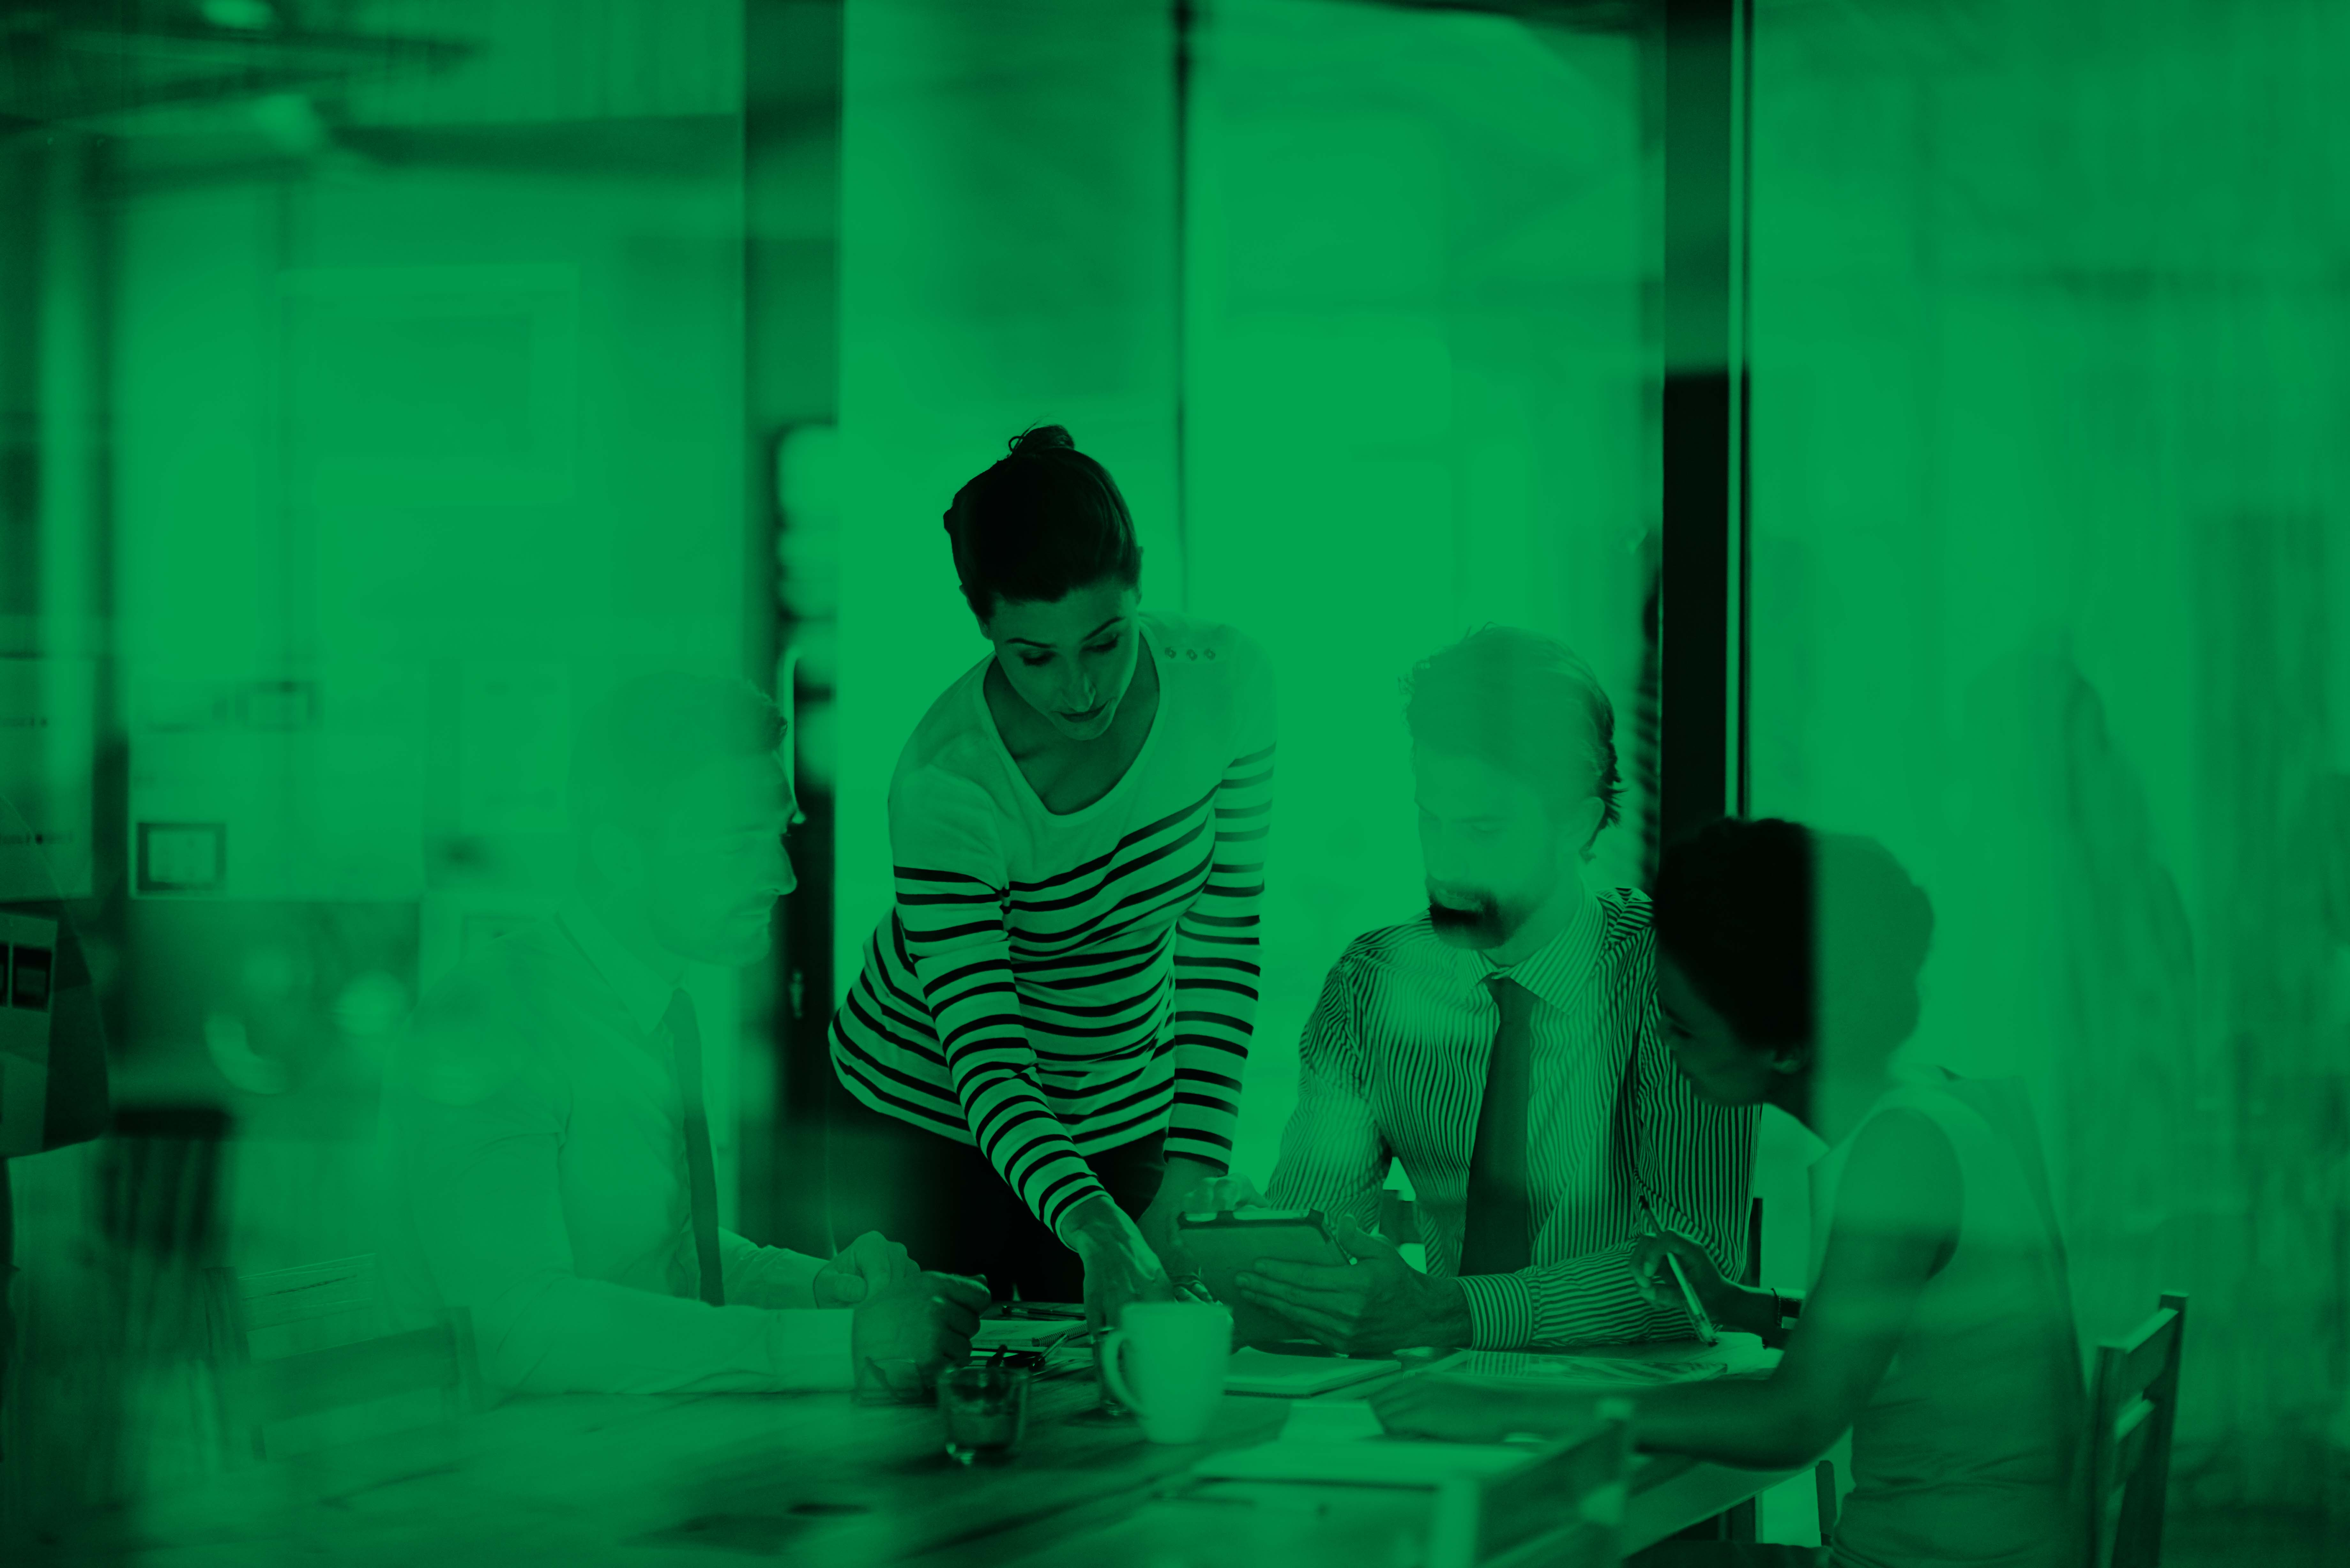 Woman_Showing_Group_Office_Green.jpg